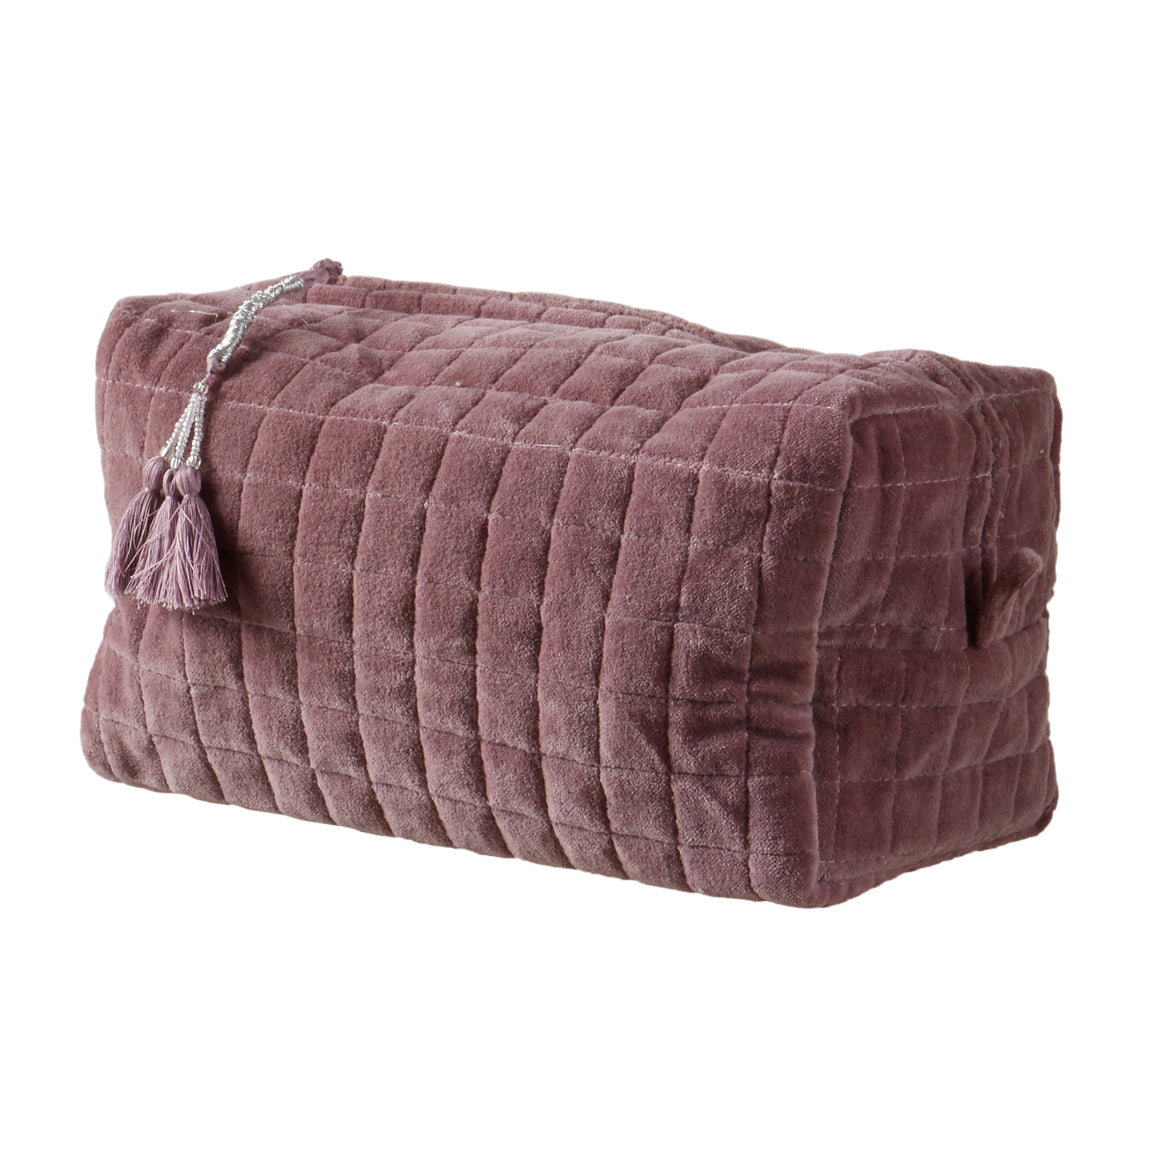 QUILTED VELVET COSMETIC BAG LIGHT PURPLE M - McHugh Lifestyle RELAXED BOHO GLAMOUR